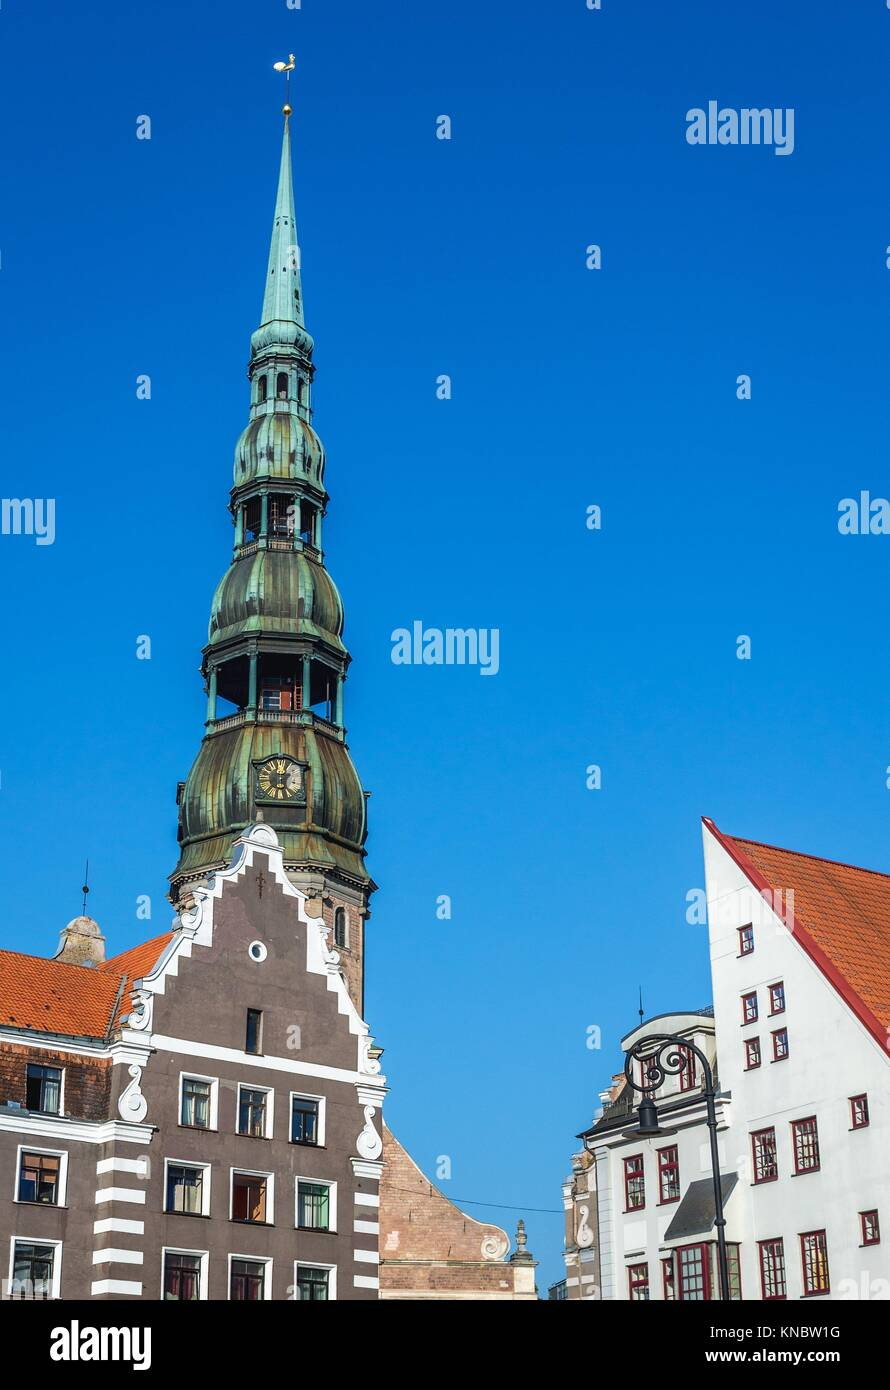 Residential buildings on Albert Square on the Old Town of Riga, capital city of Republic of Latvia. Bell tower of - Stock Image